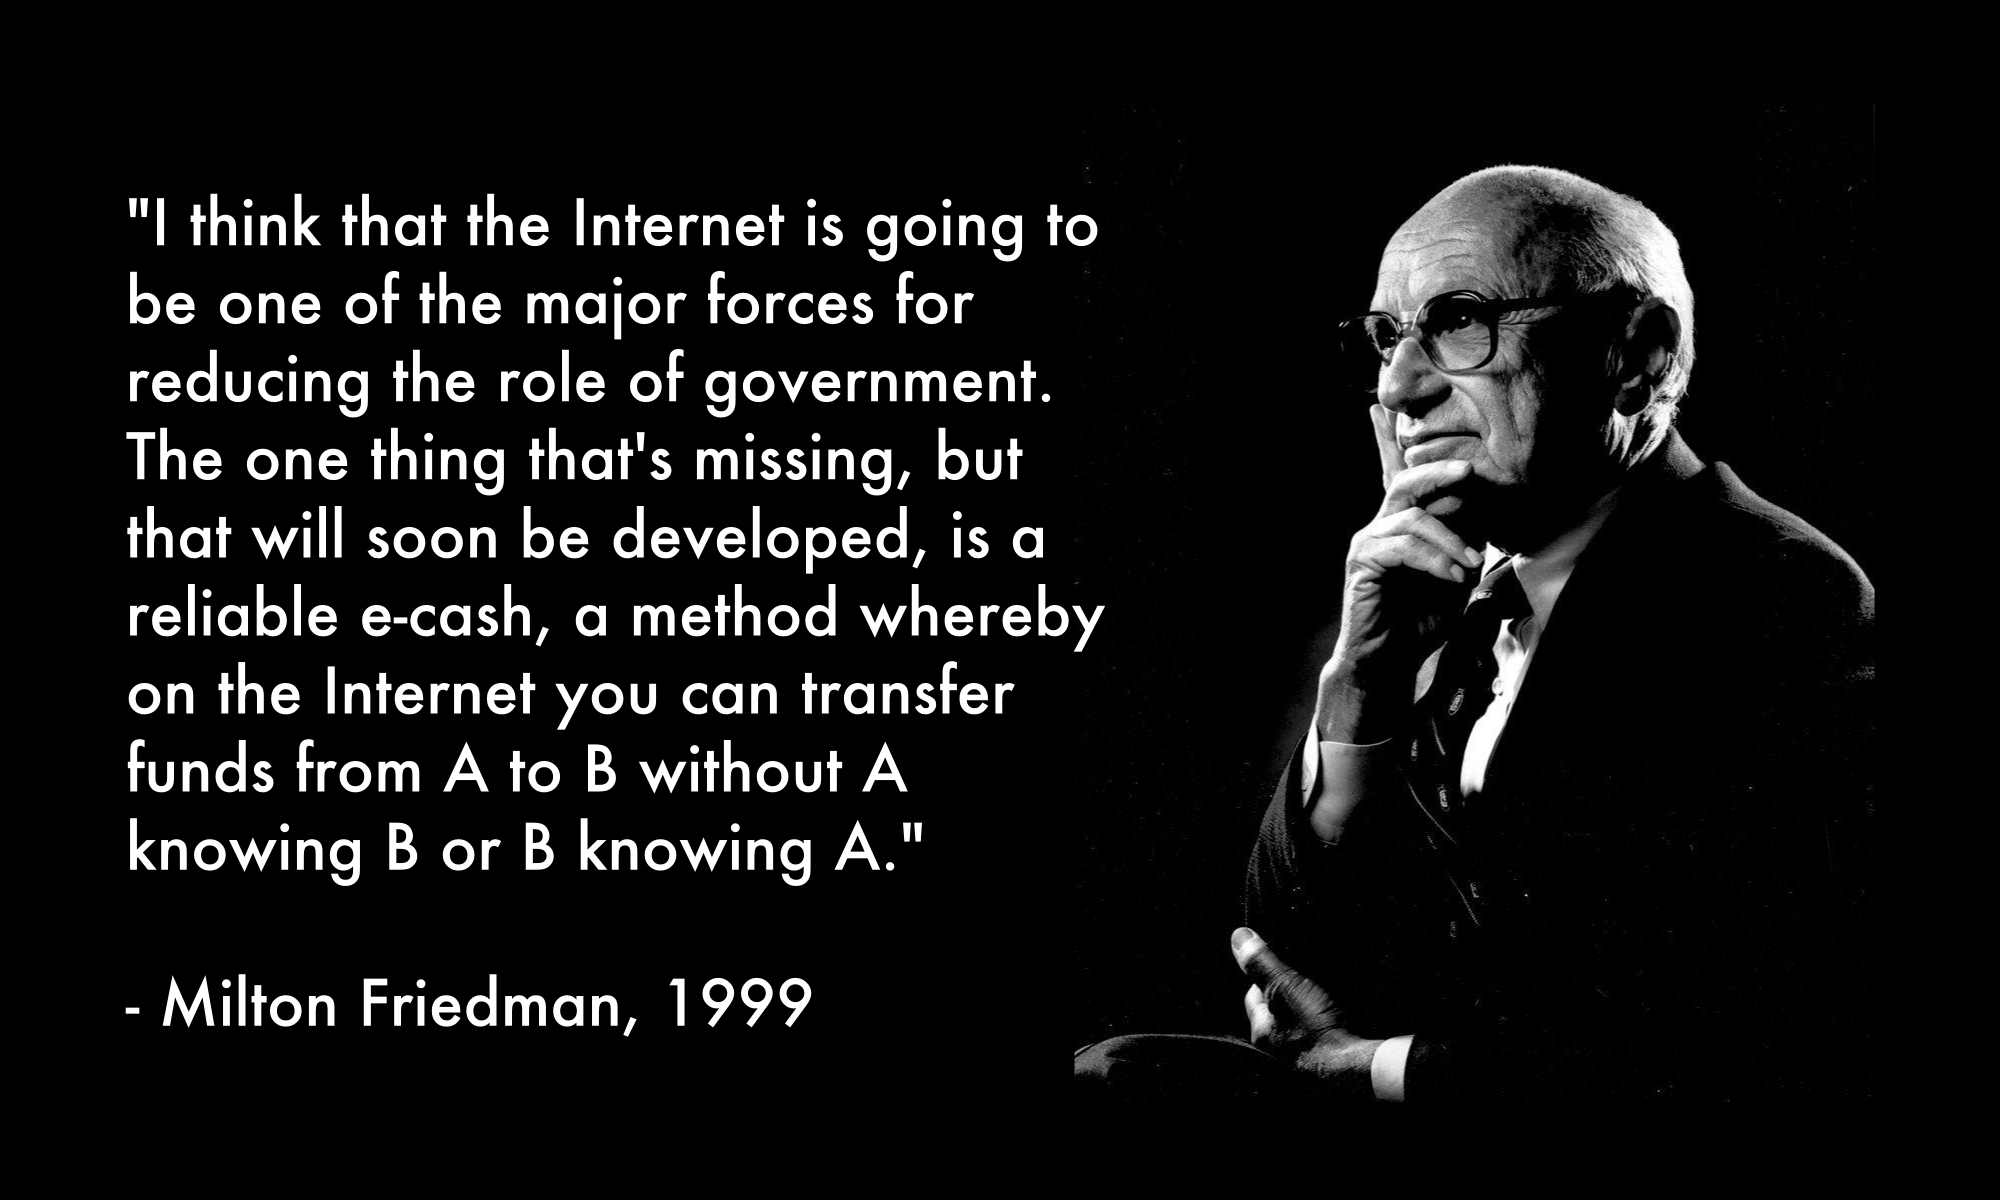 Milton Friedman on e-cash